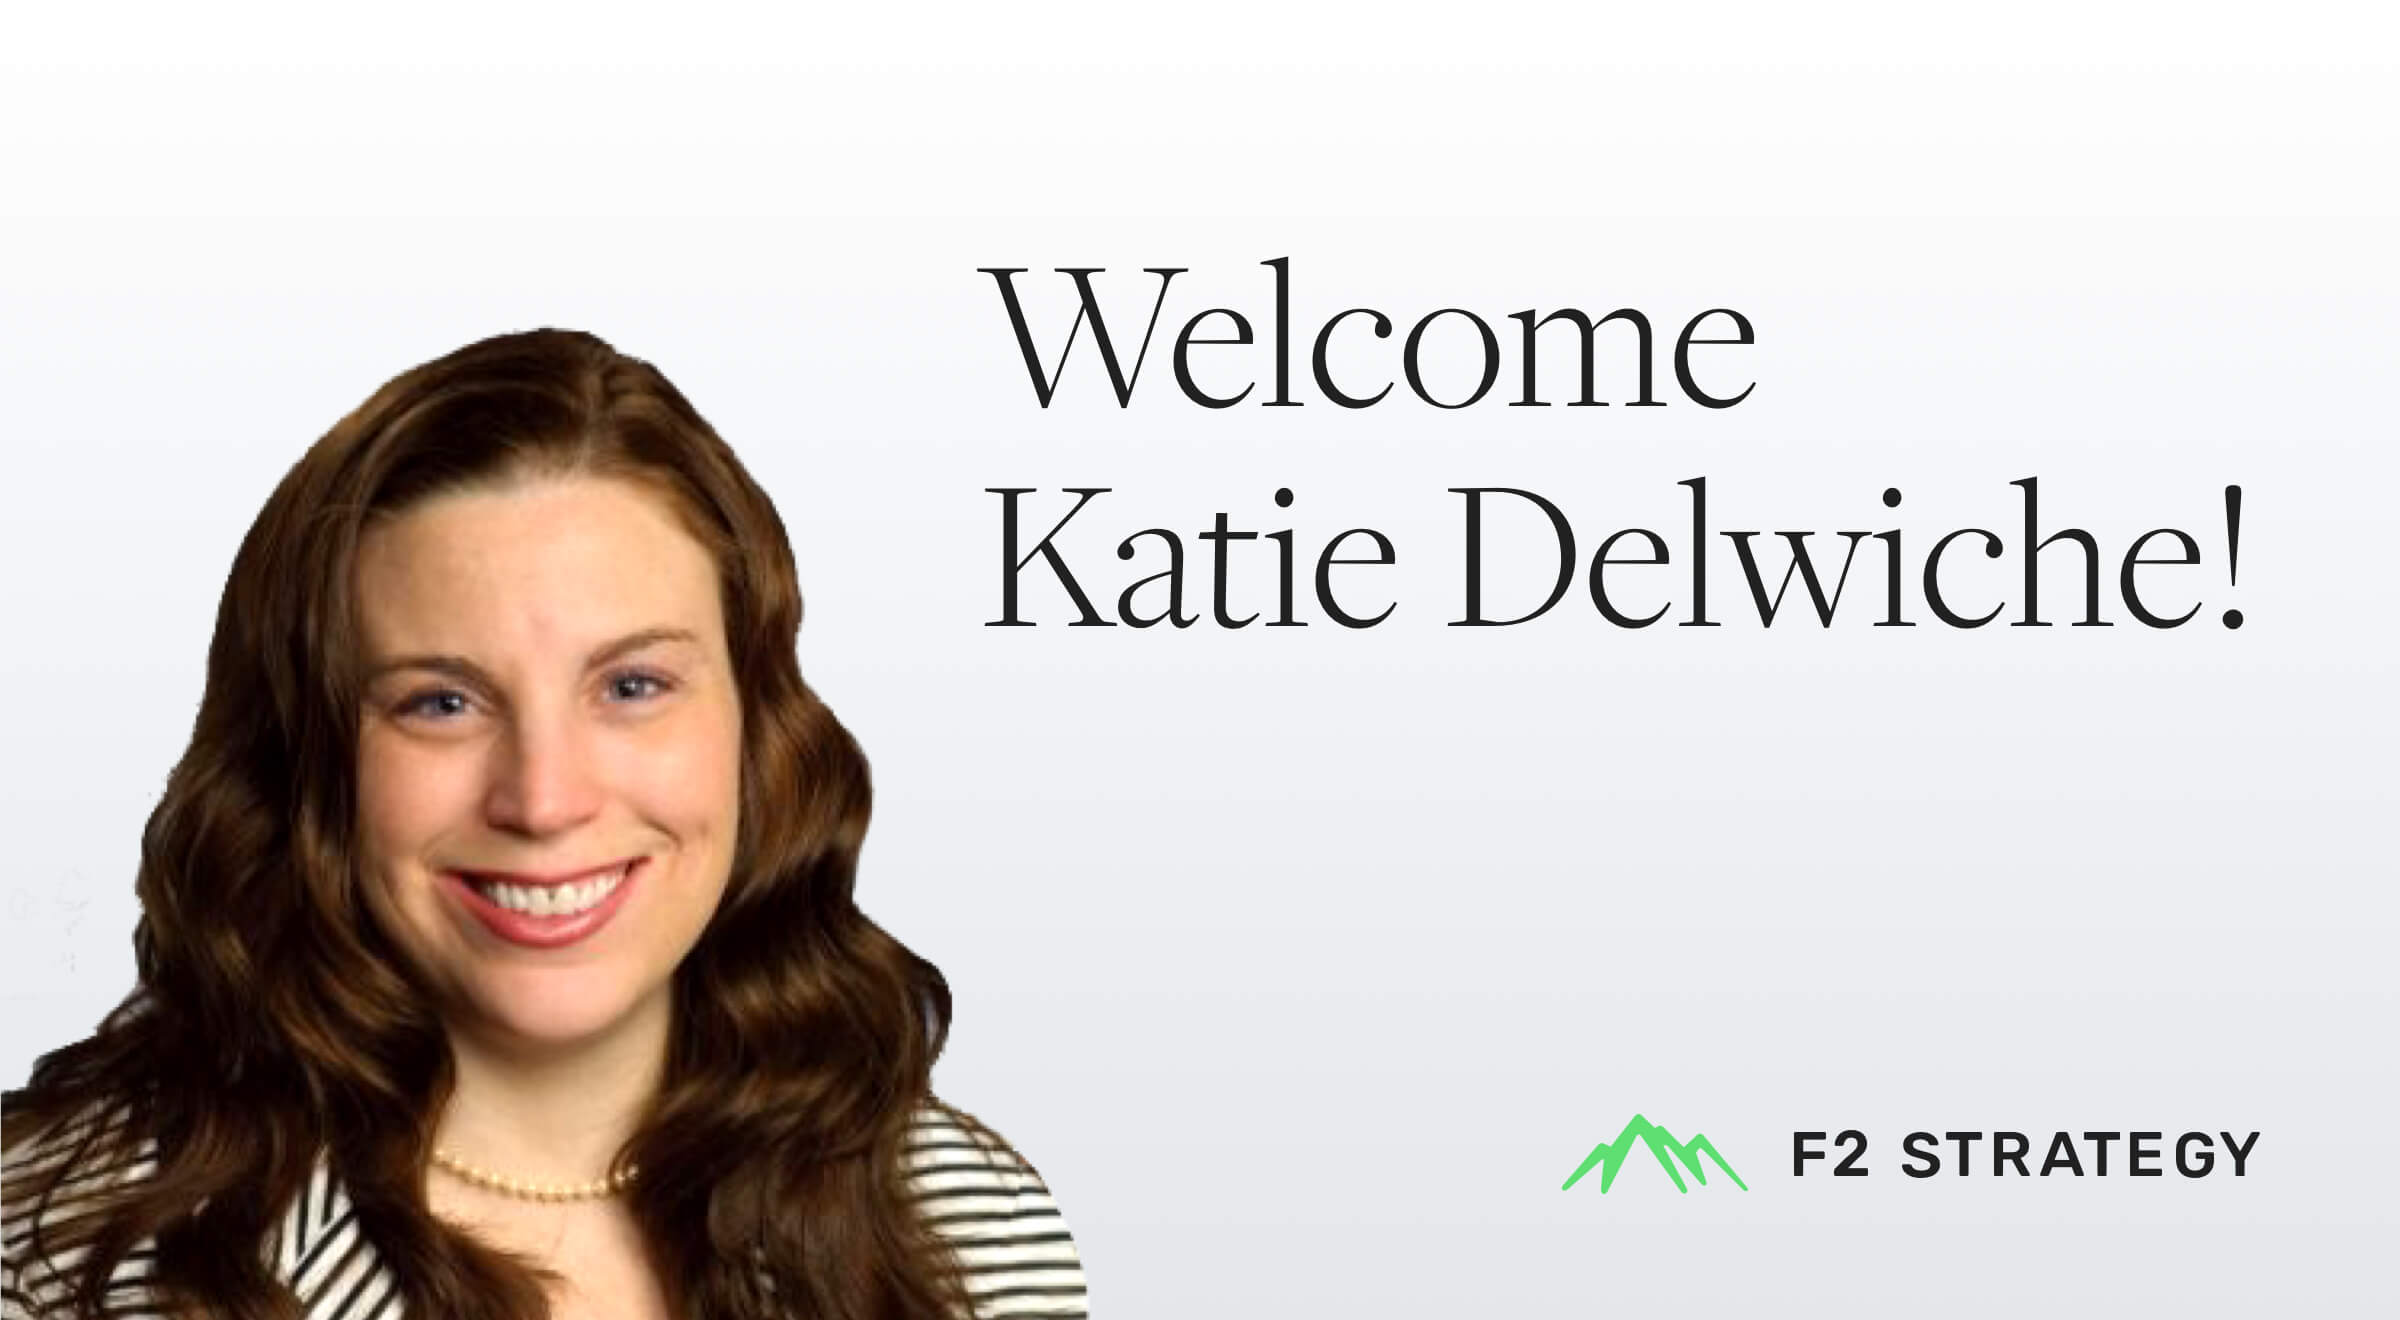 Katie Delwiche Joins F2 Strategy as Manager, Wealth Technology Strategist